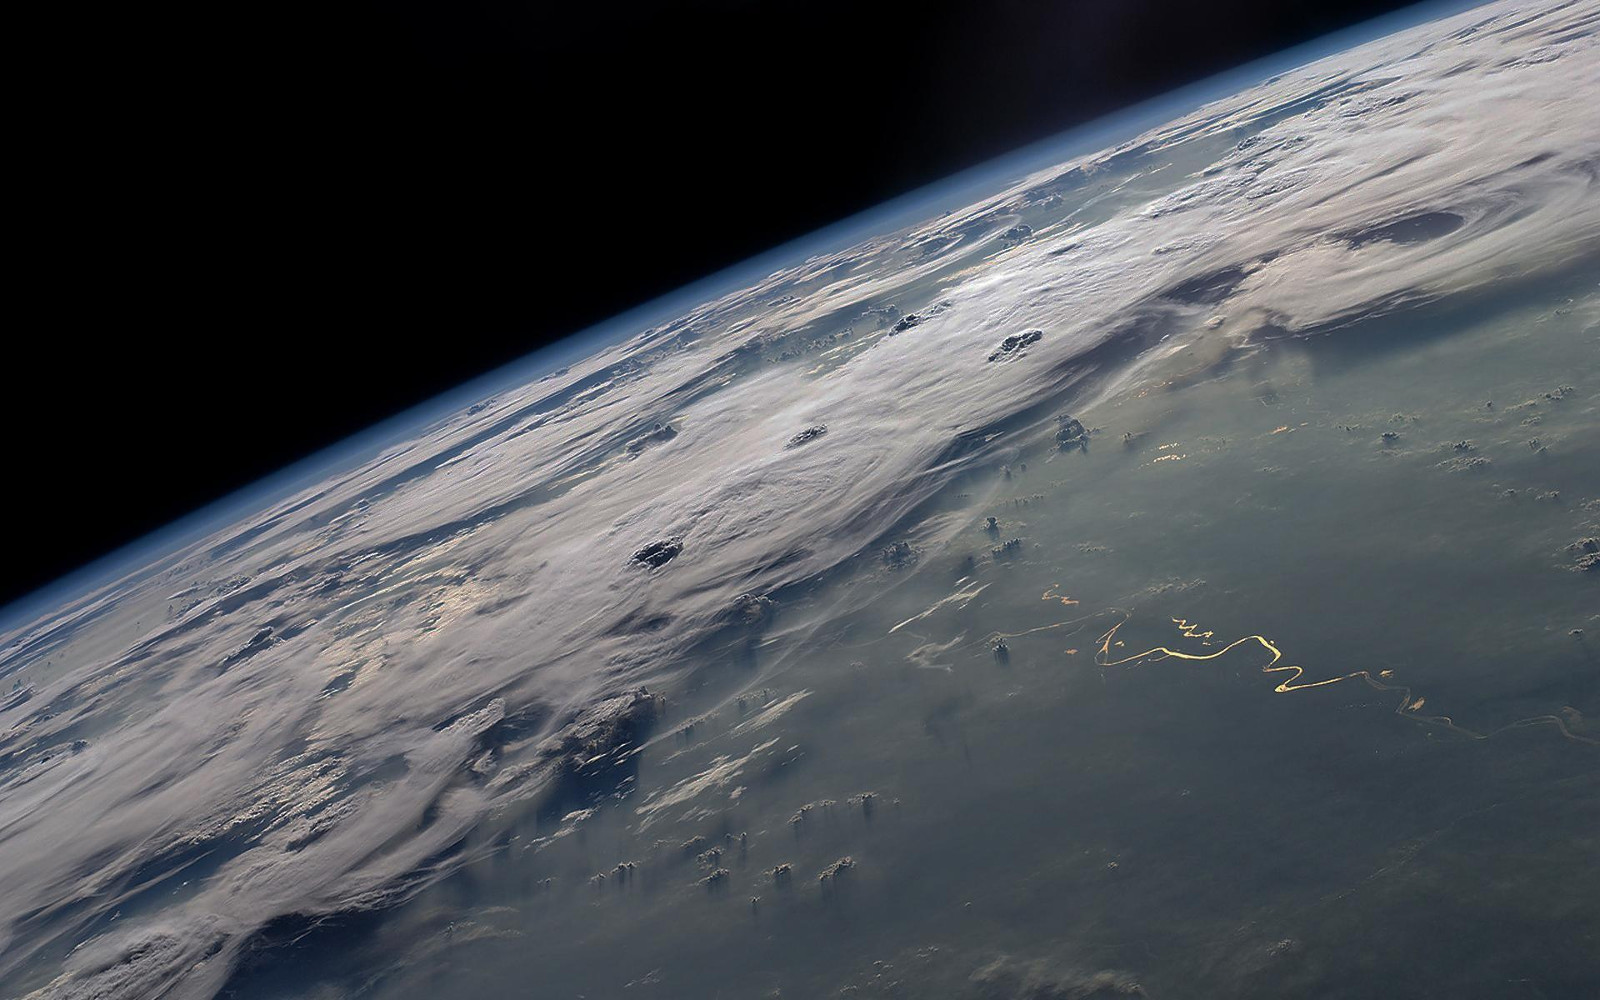 A Hazy Atmosphere on Early Earth